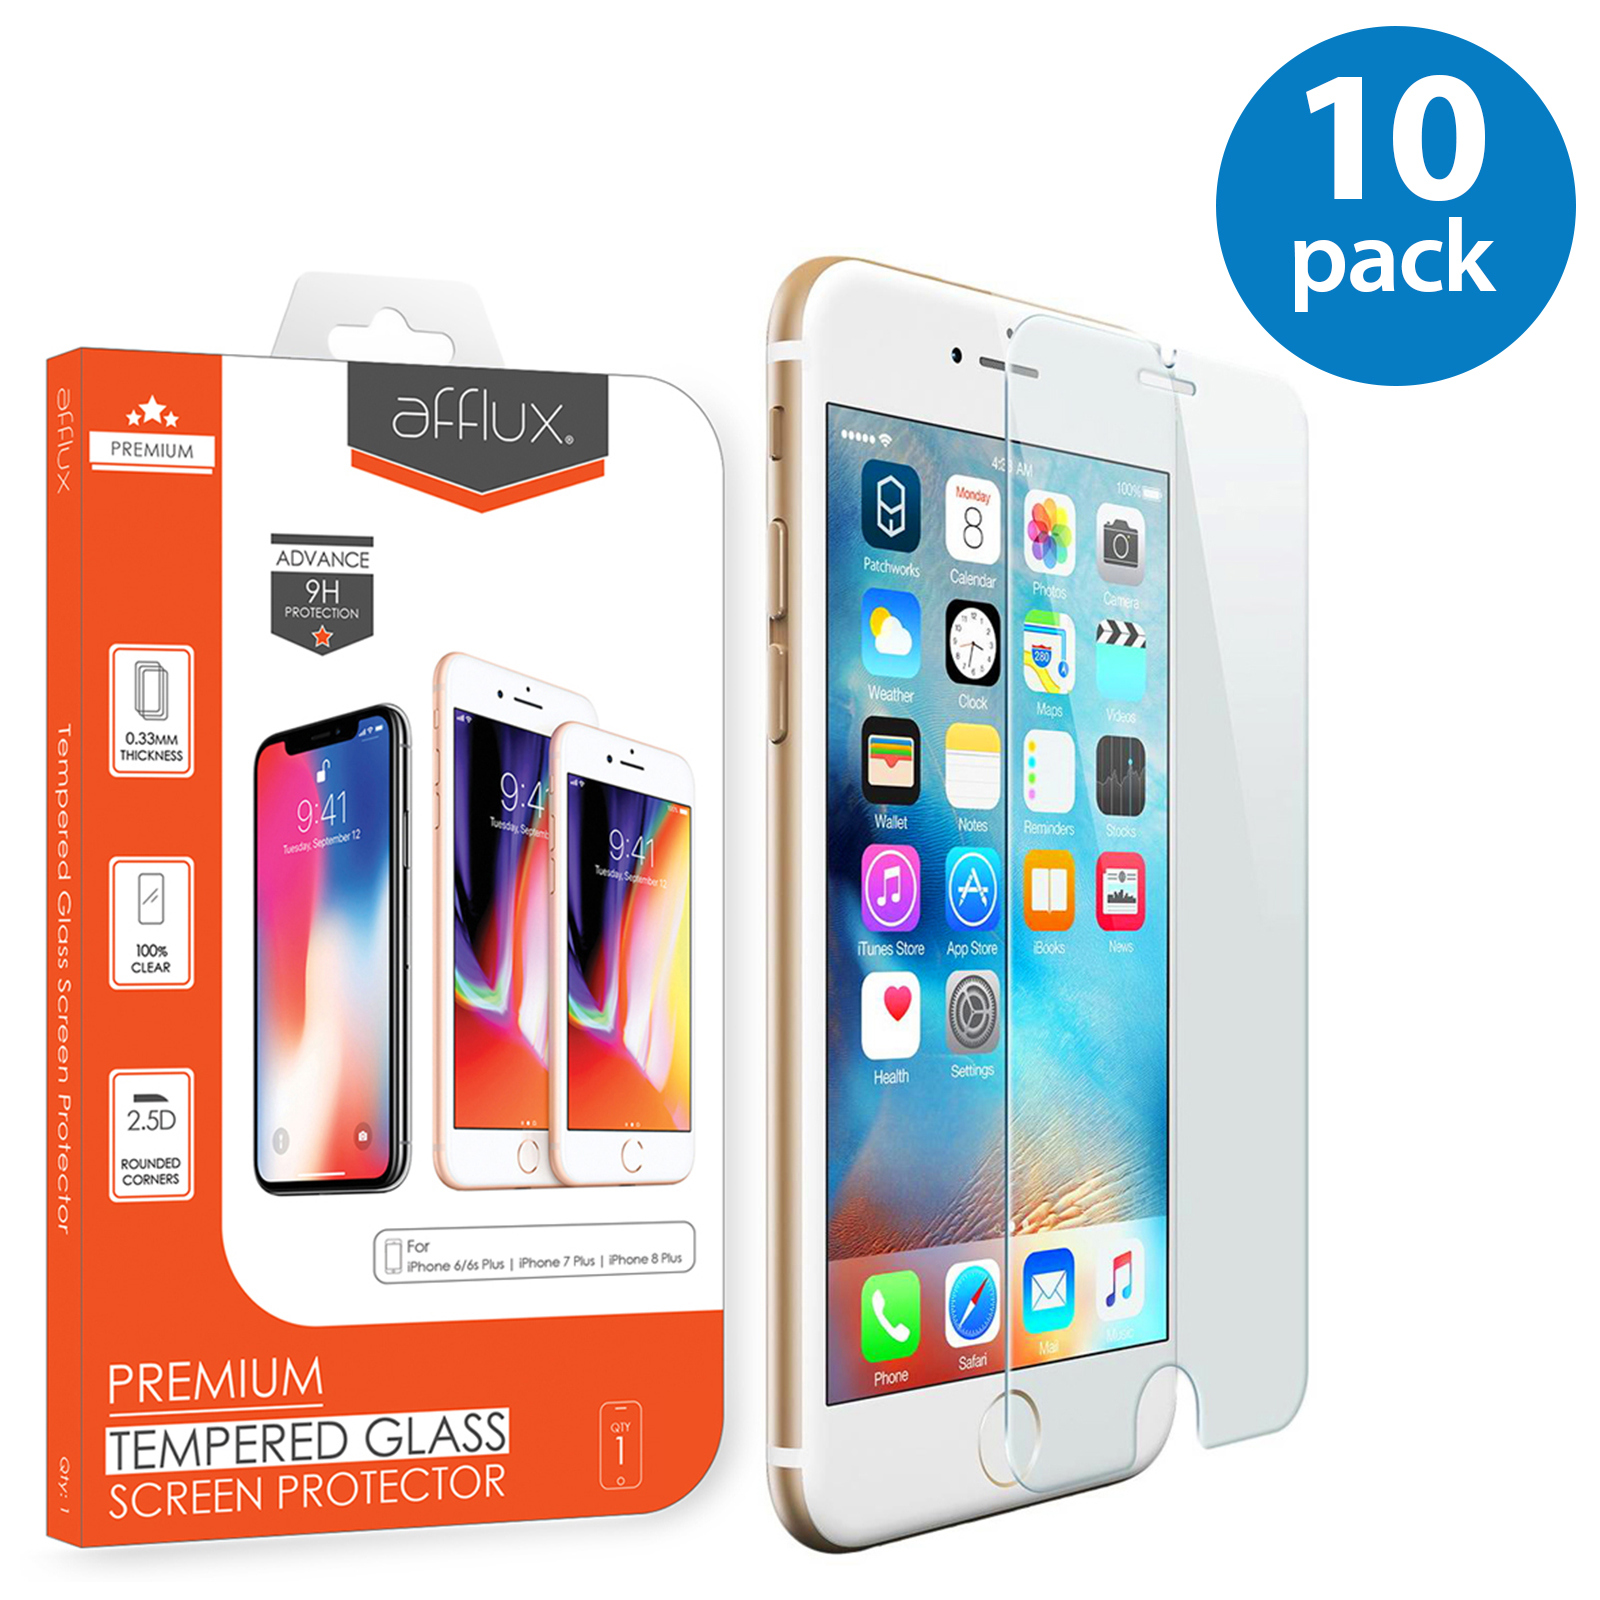 10x Afflux Apple iPhone 8 Plus Tempered Glass Screen Protector Film Guard Case Friendly For iPhone 8 Plus